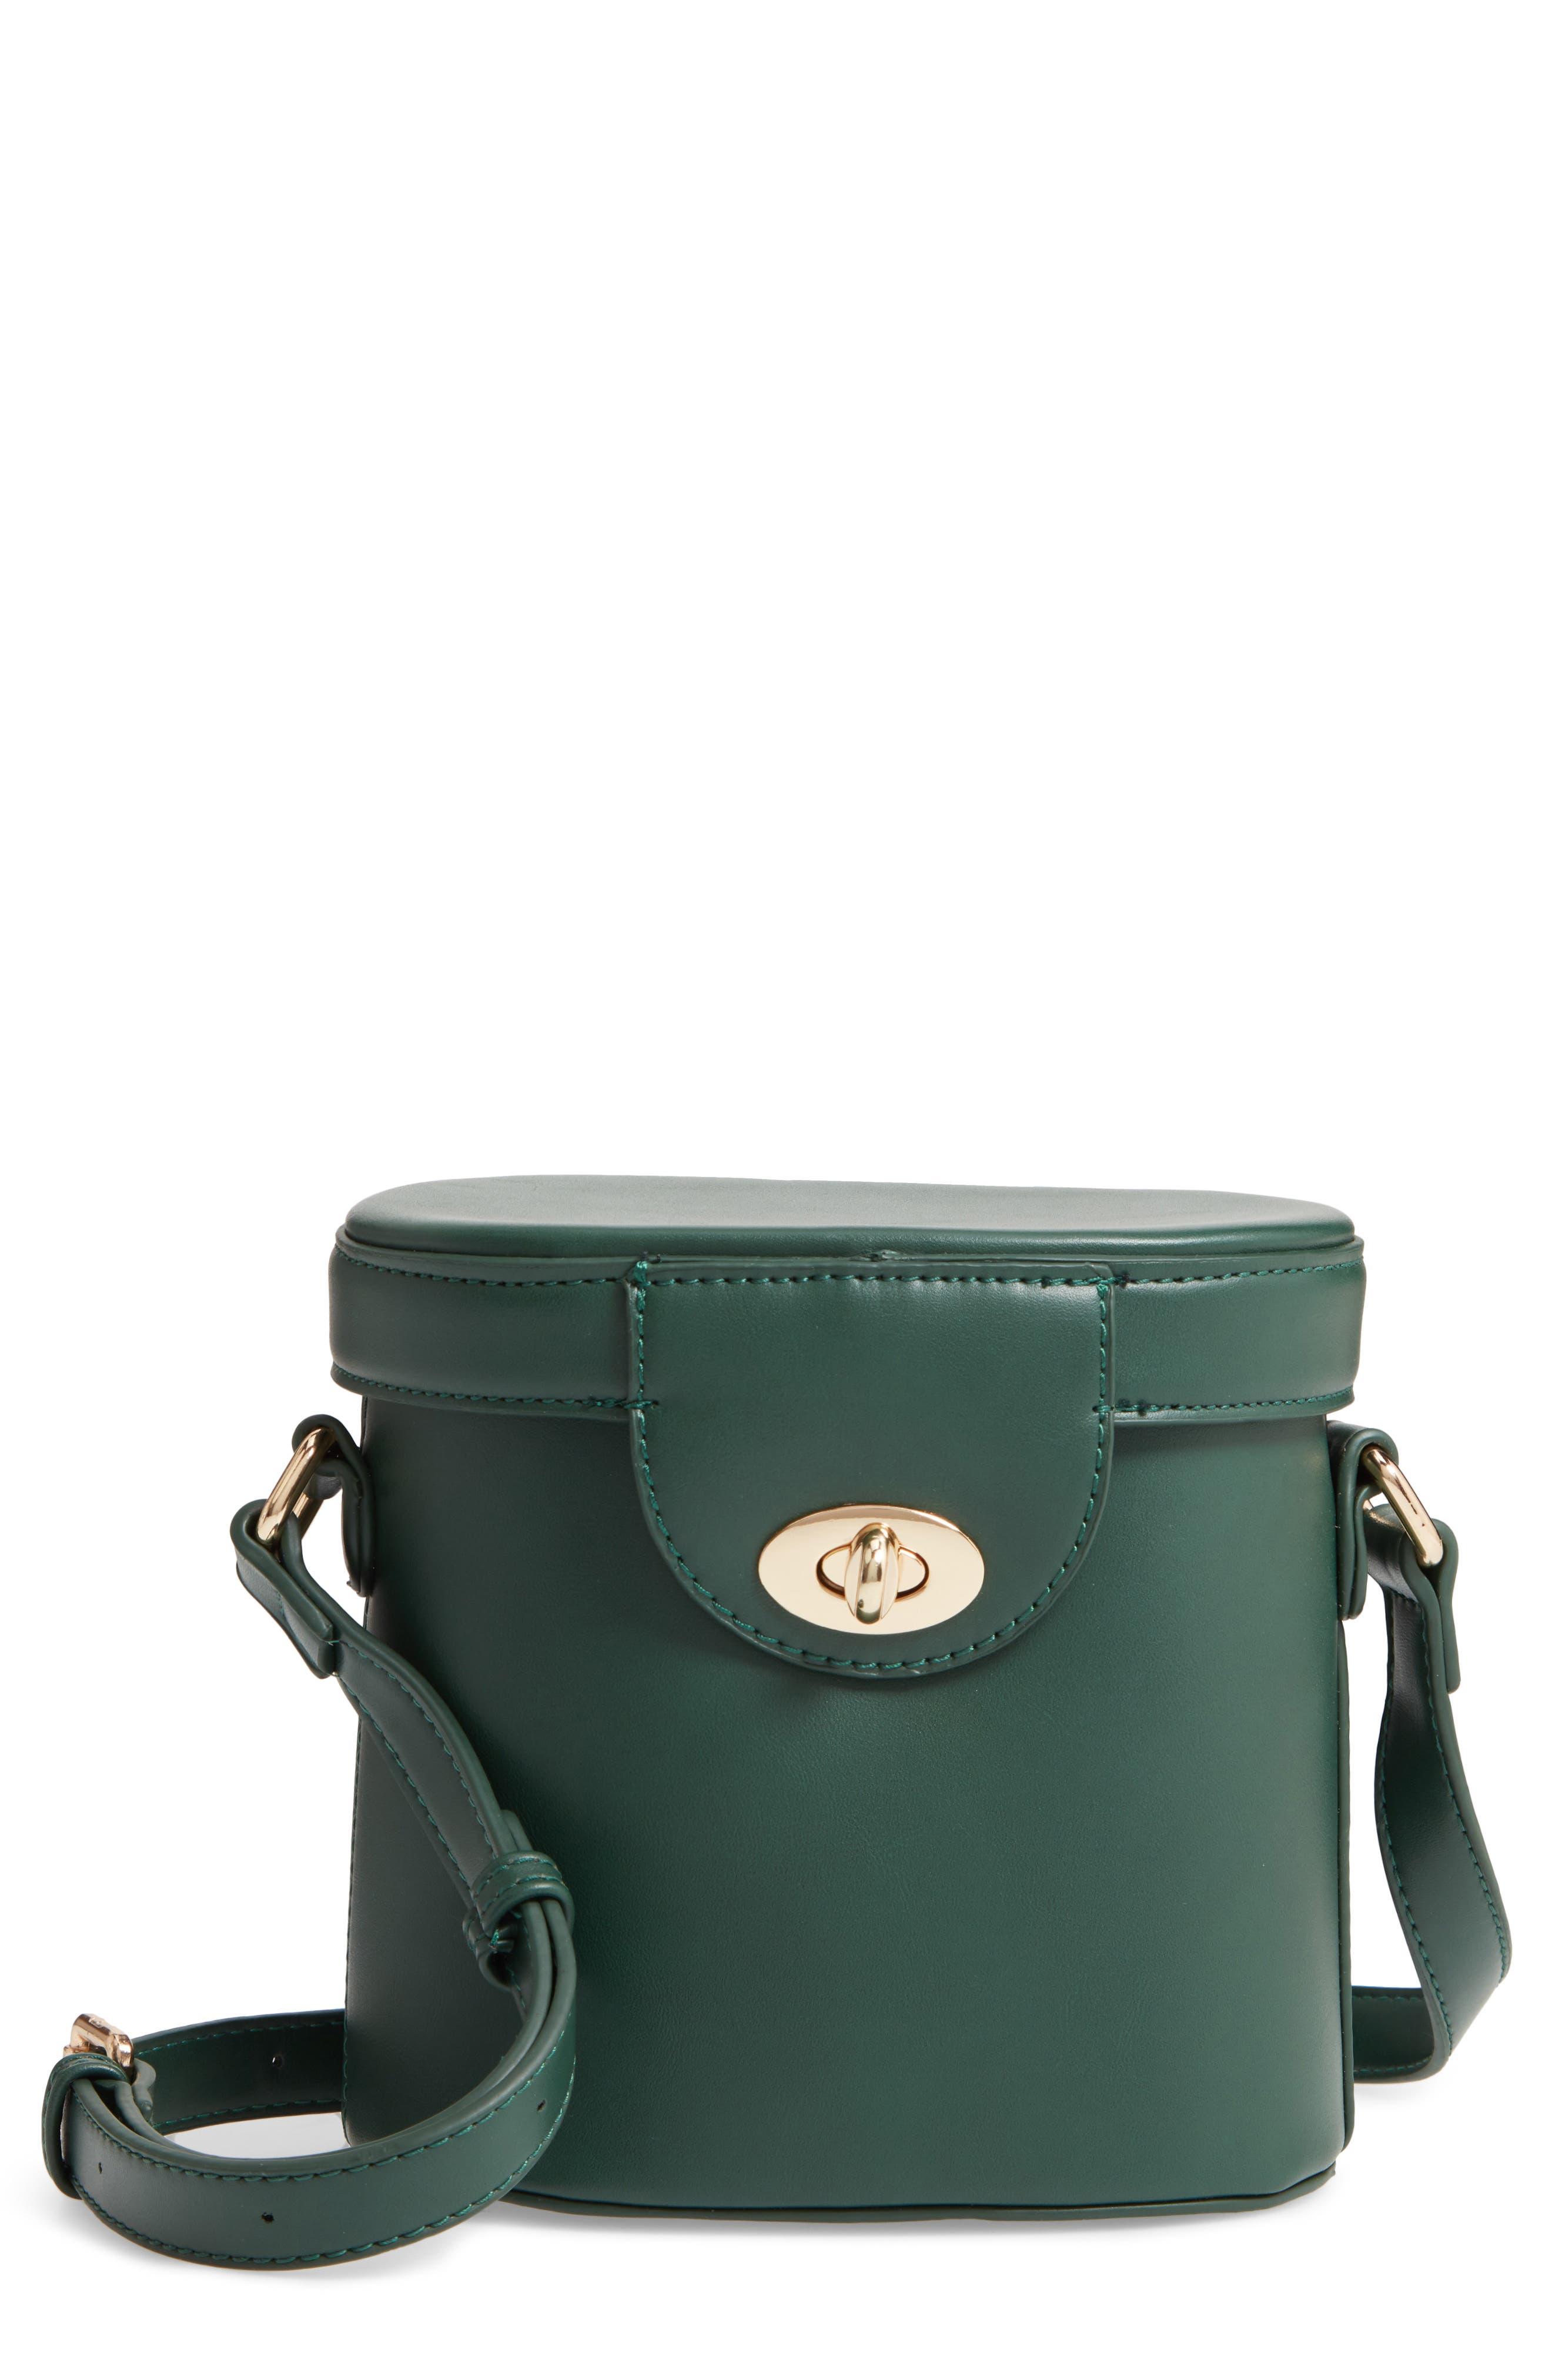 STREET LEVEL Faux Leather Bucket Bag - Green